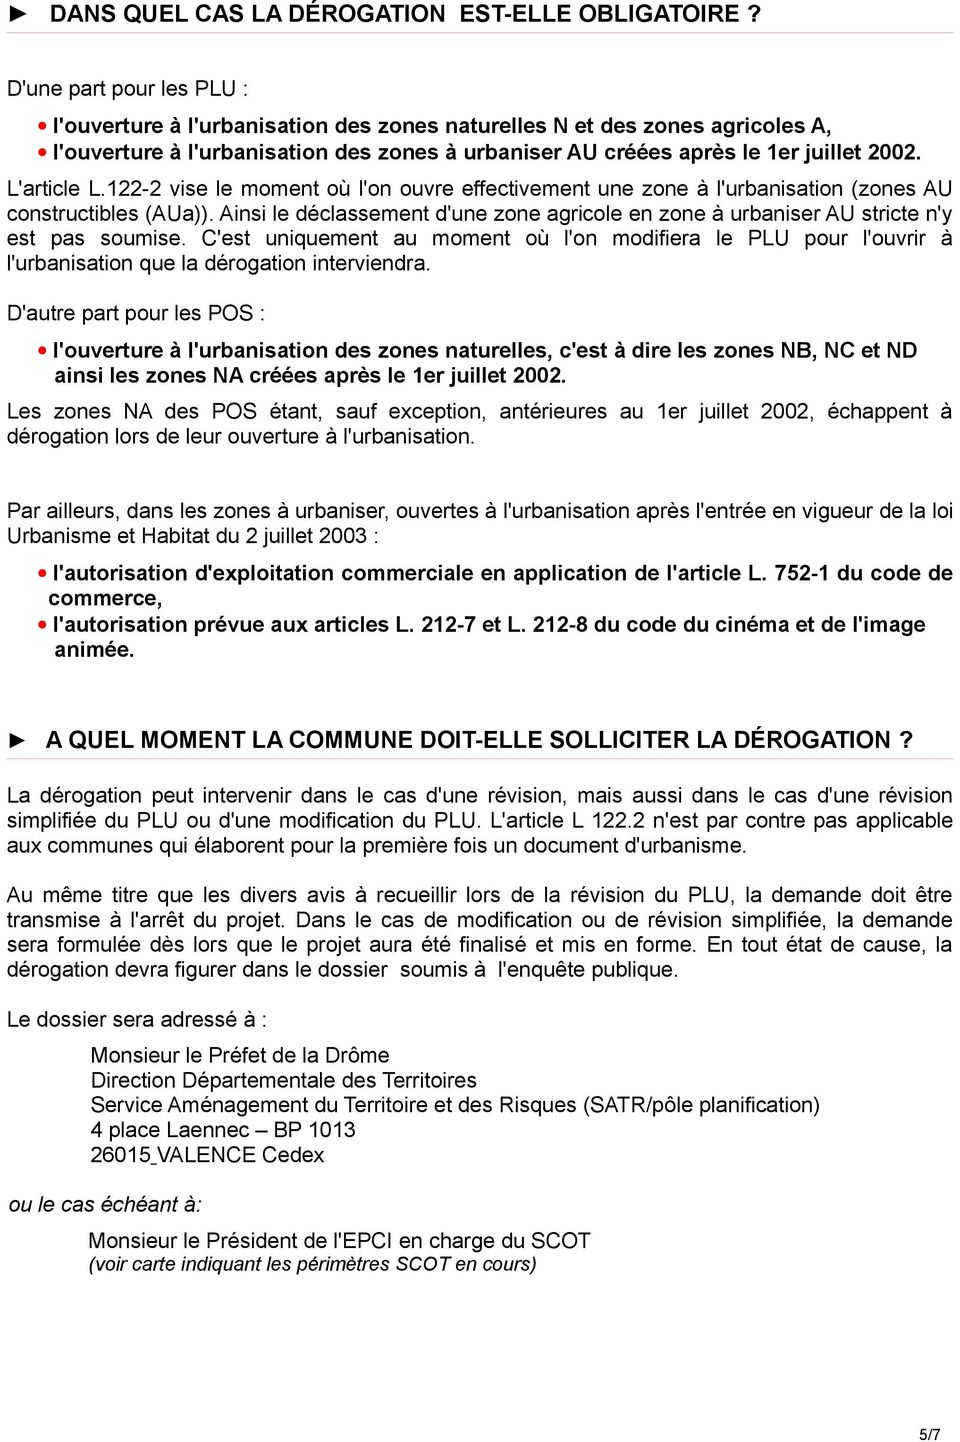 L'article L.122-2 vise le moment où l'on ouvre effectivement une zone à l'urbanisation (zones AU constructibles (AUa)).